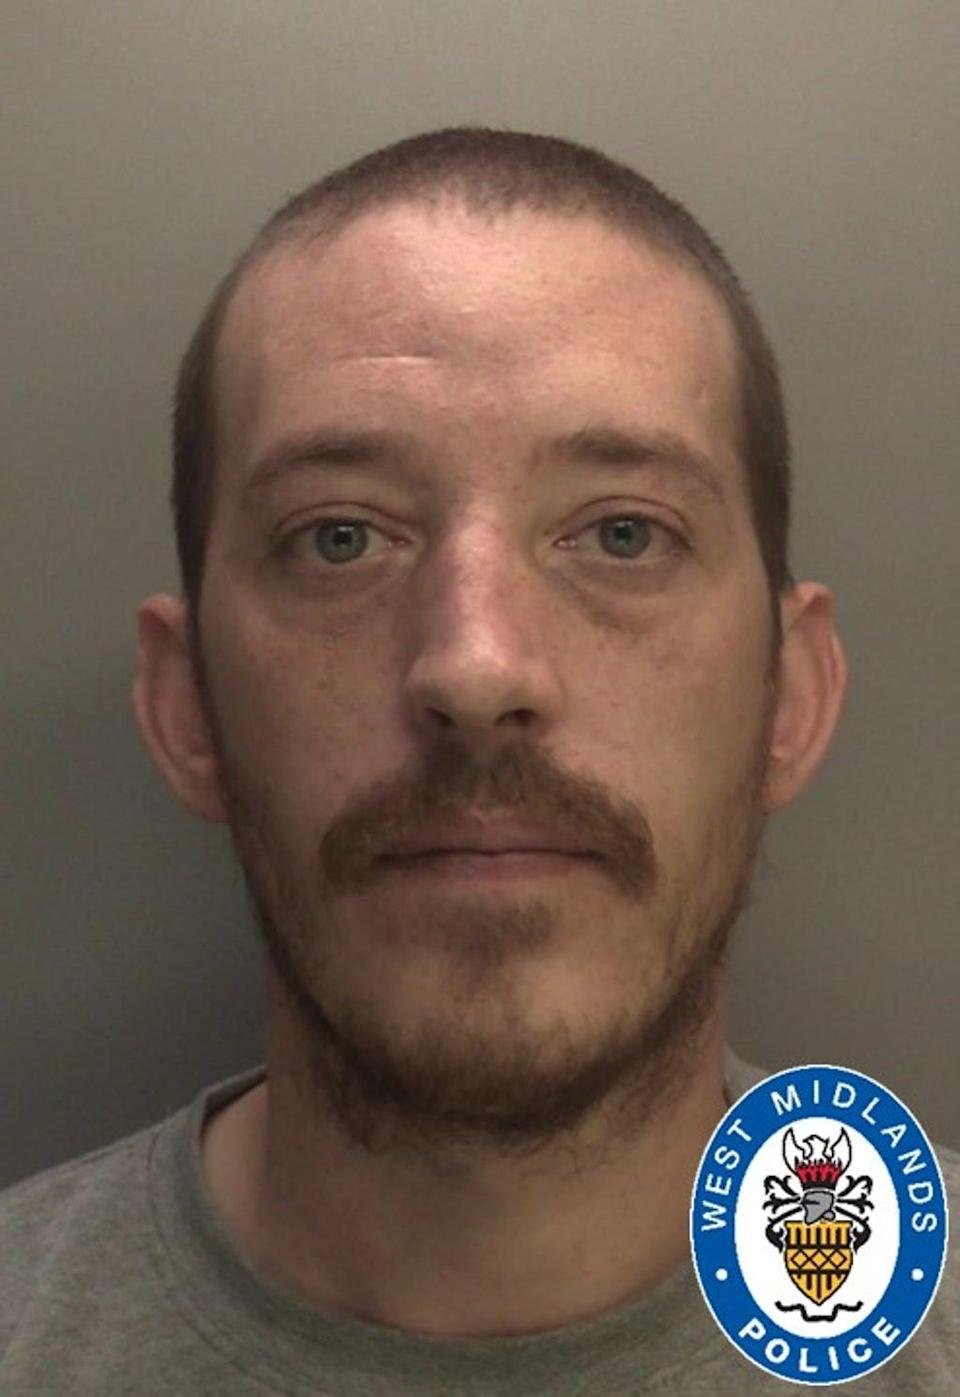 A custody image of David Rogers, who was convicted of murder. (West Midlands Police/PA)